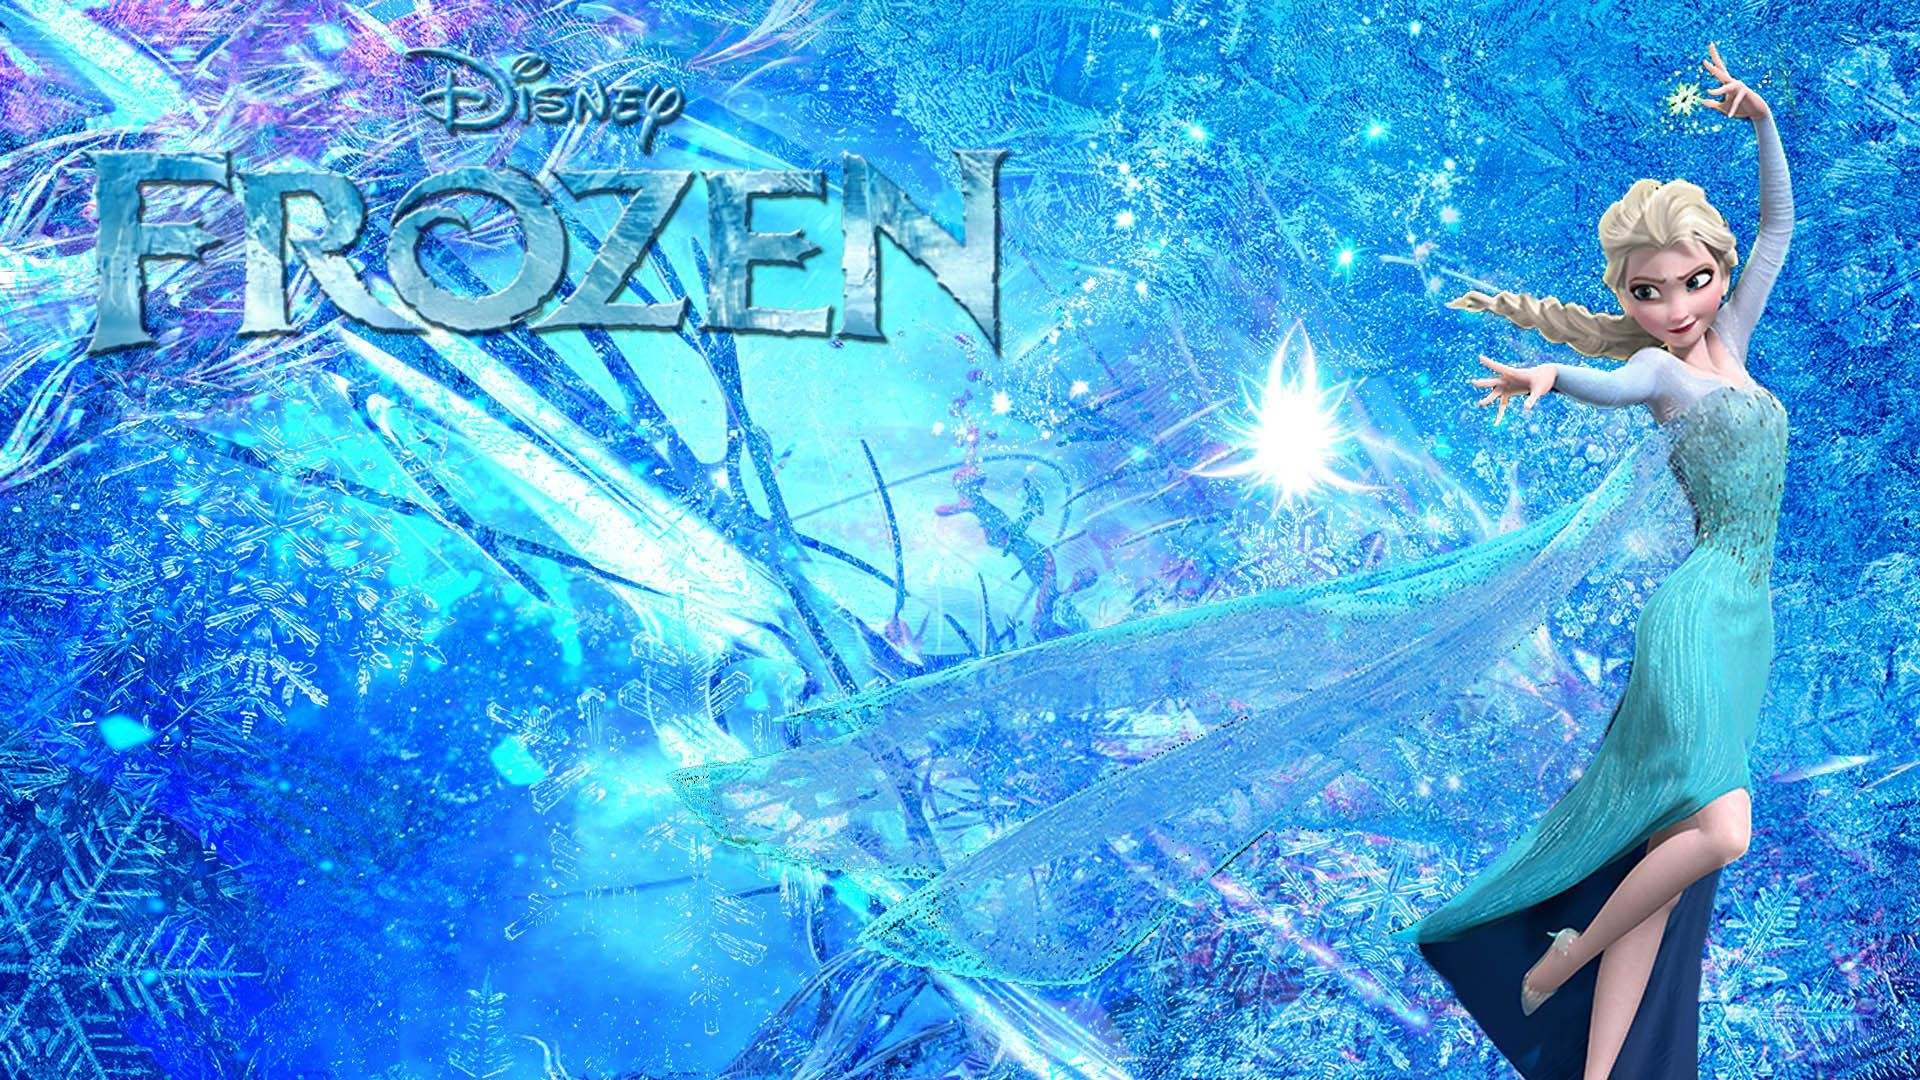 1920x1080 Off On Disney HD Wallpapers Christmas Wallpaper Backgrounds